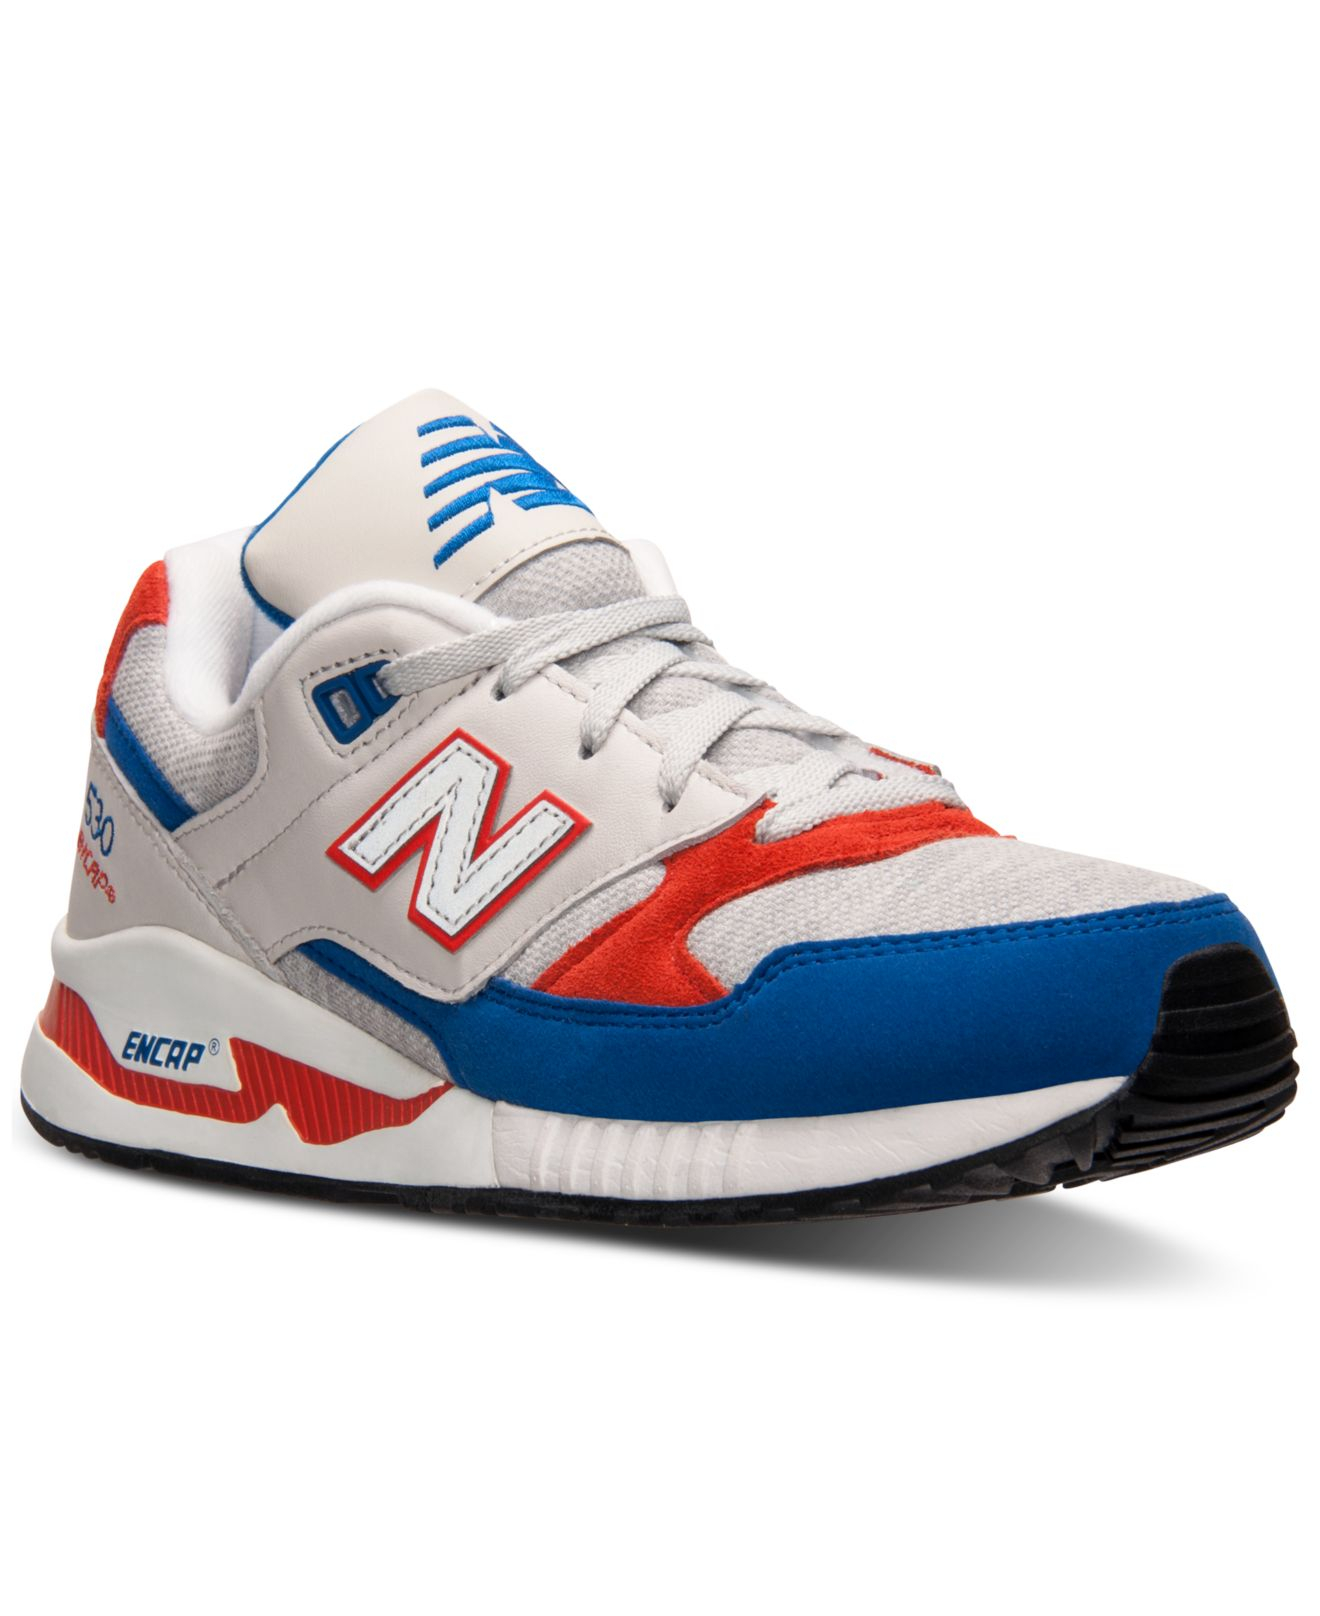 new balance 530 mens trainers